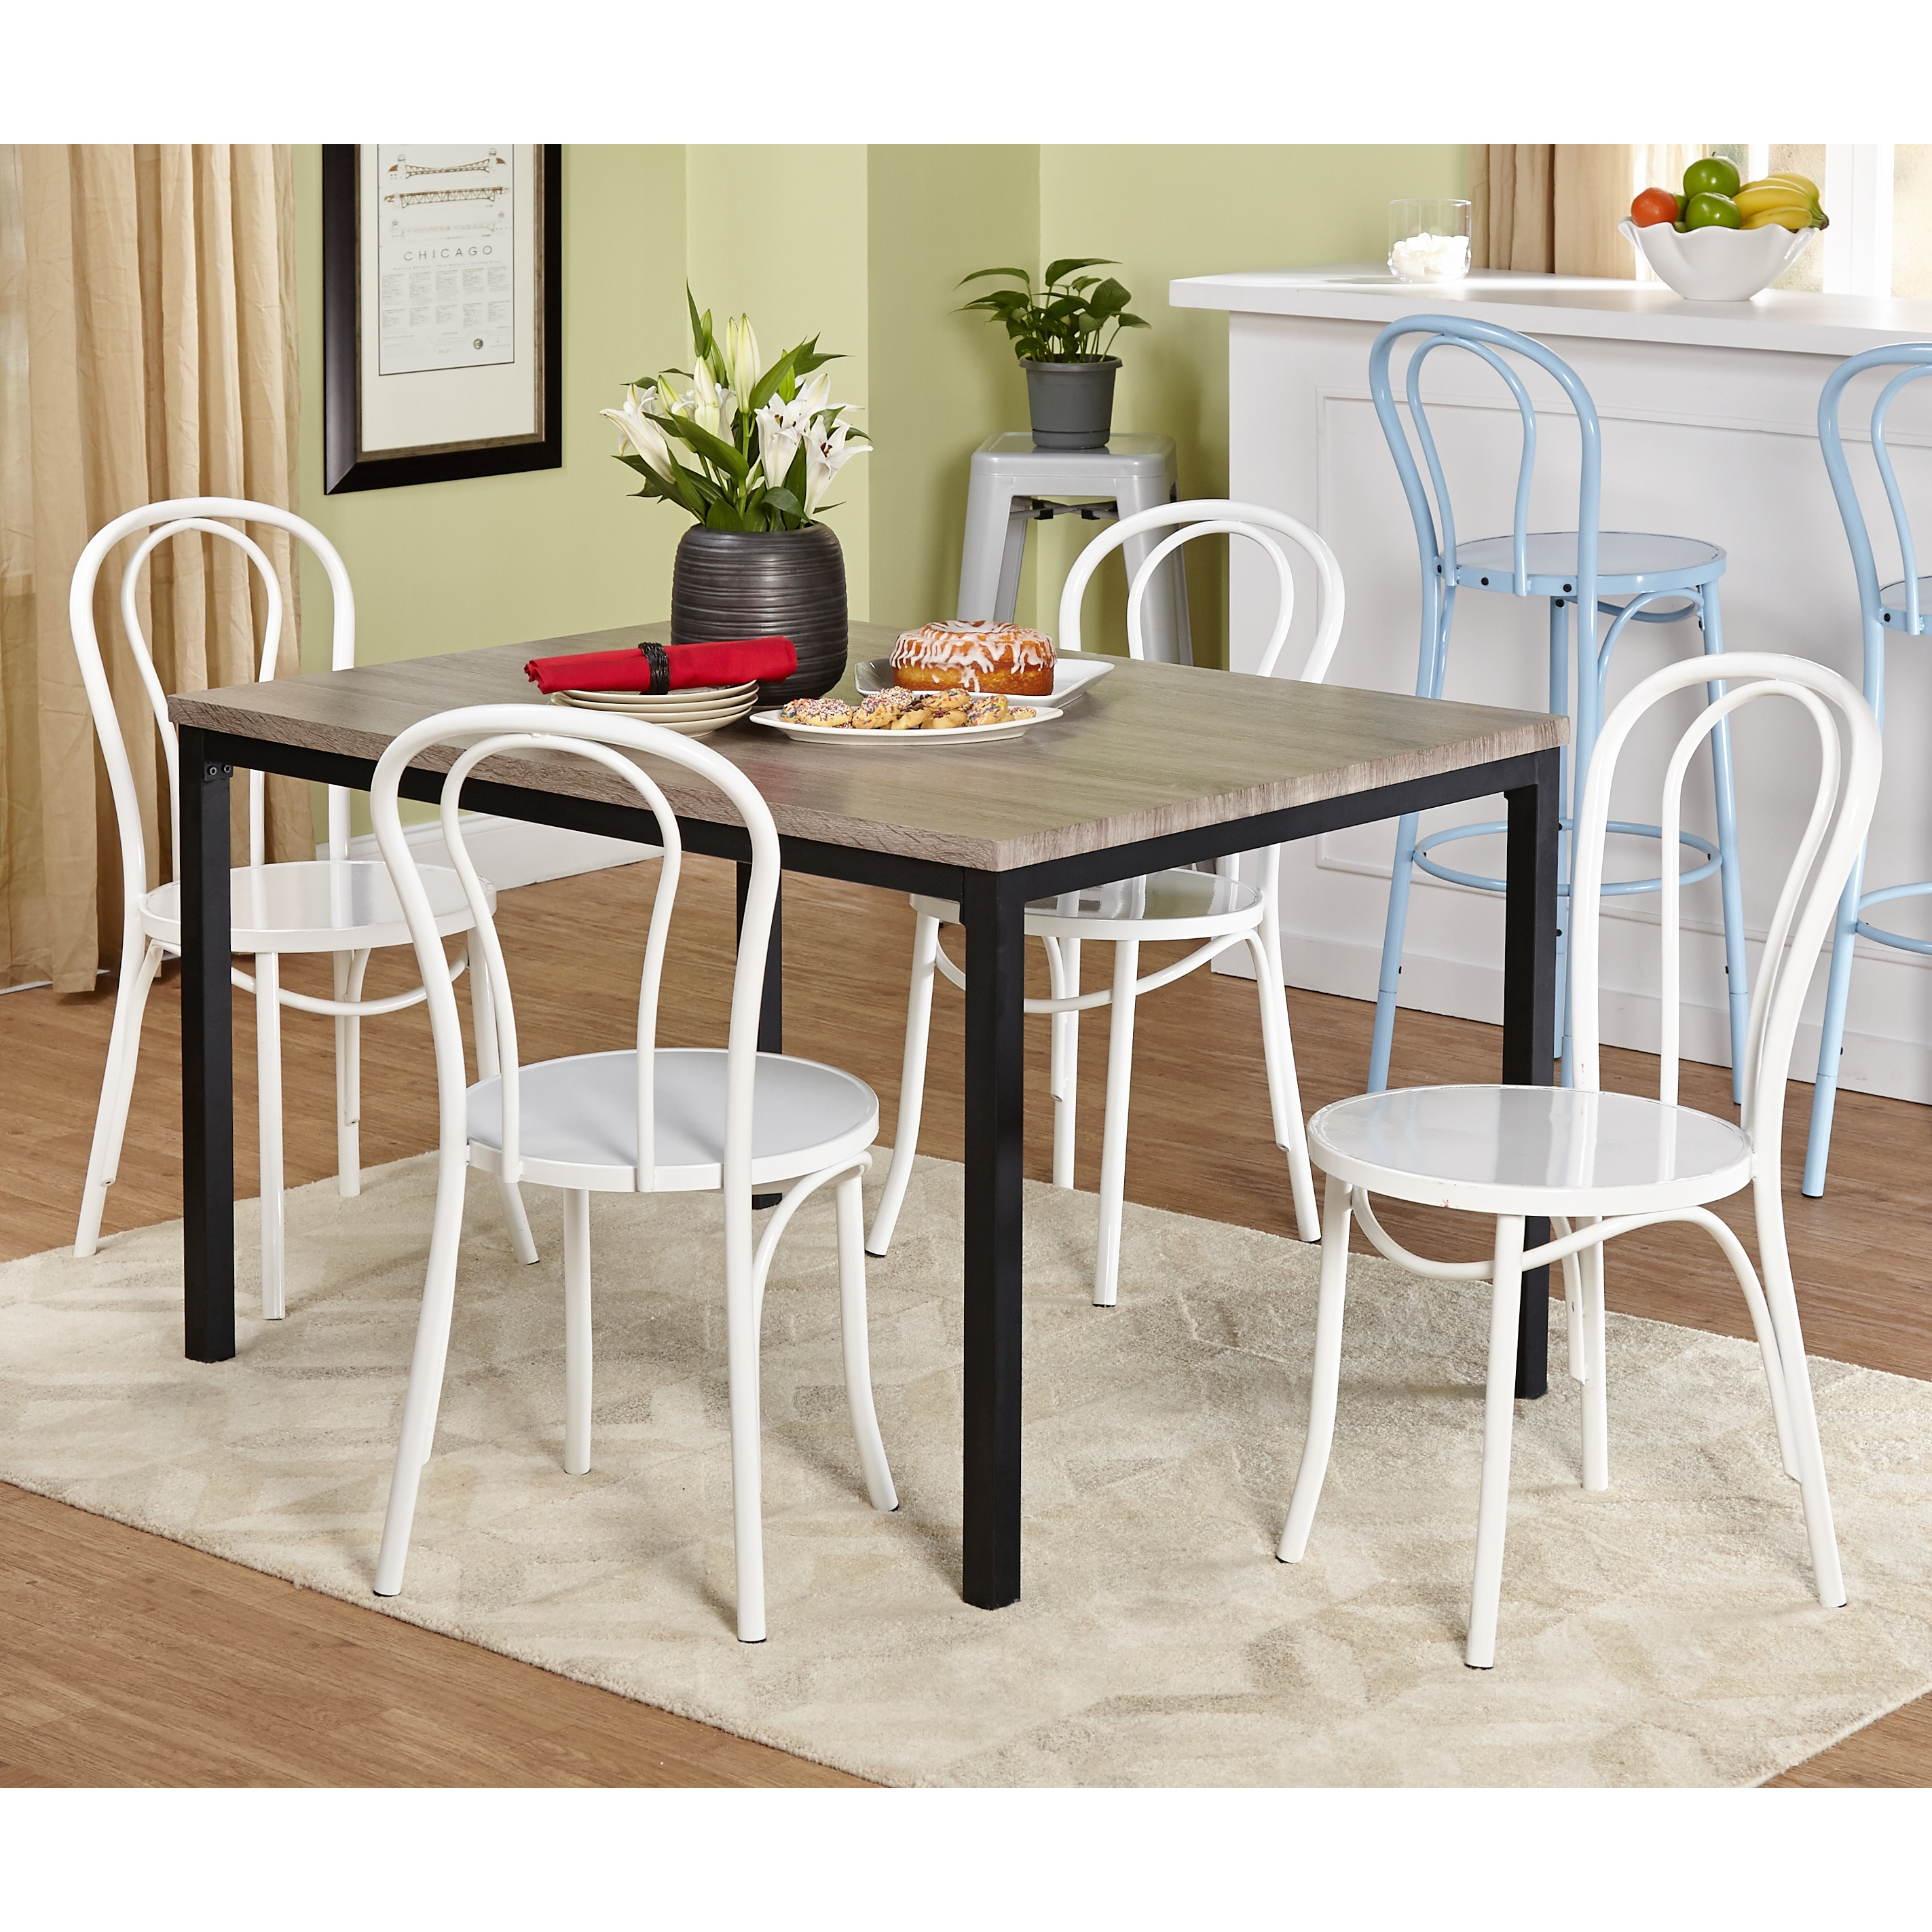 Retro Living Room Furniture Sets: Simple Living 5-piece Vintage Dining Set With White Chairs